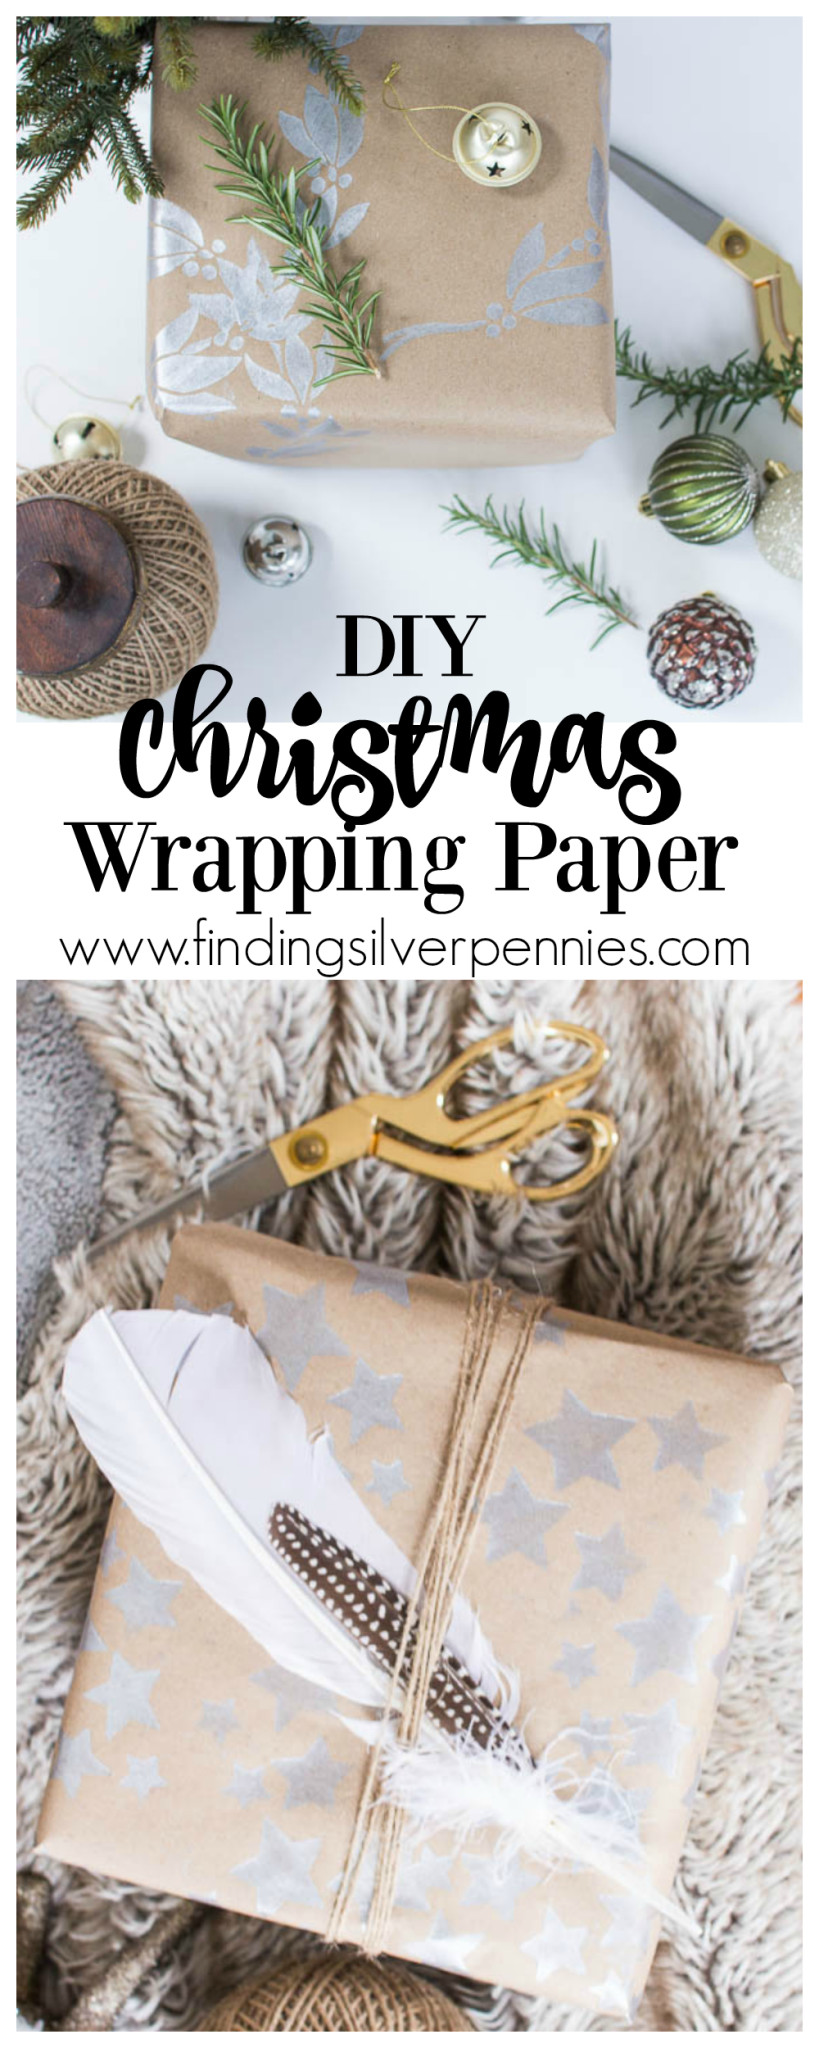 DIY Christmas Wrapping Paper by Finding Silver Pennies